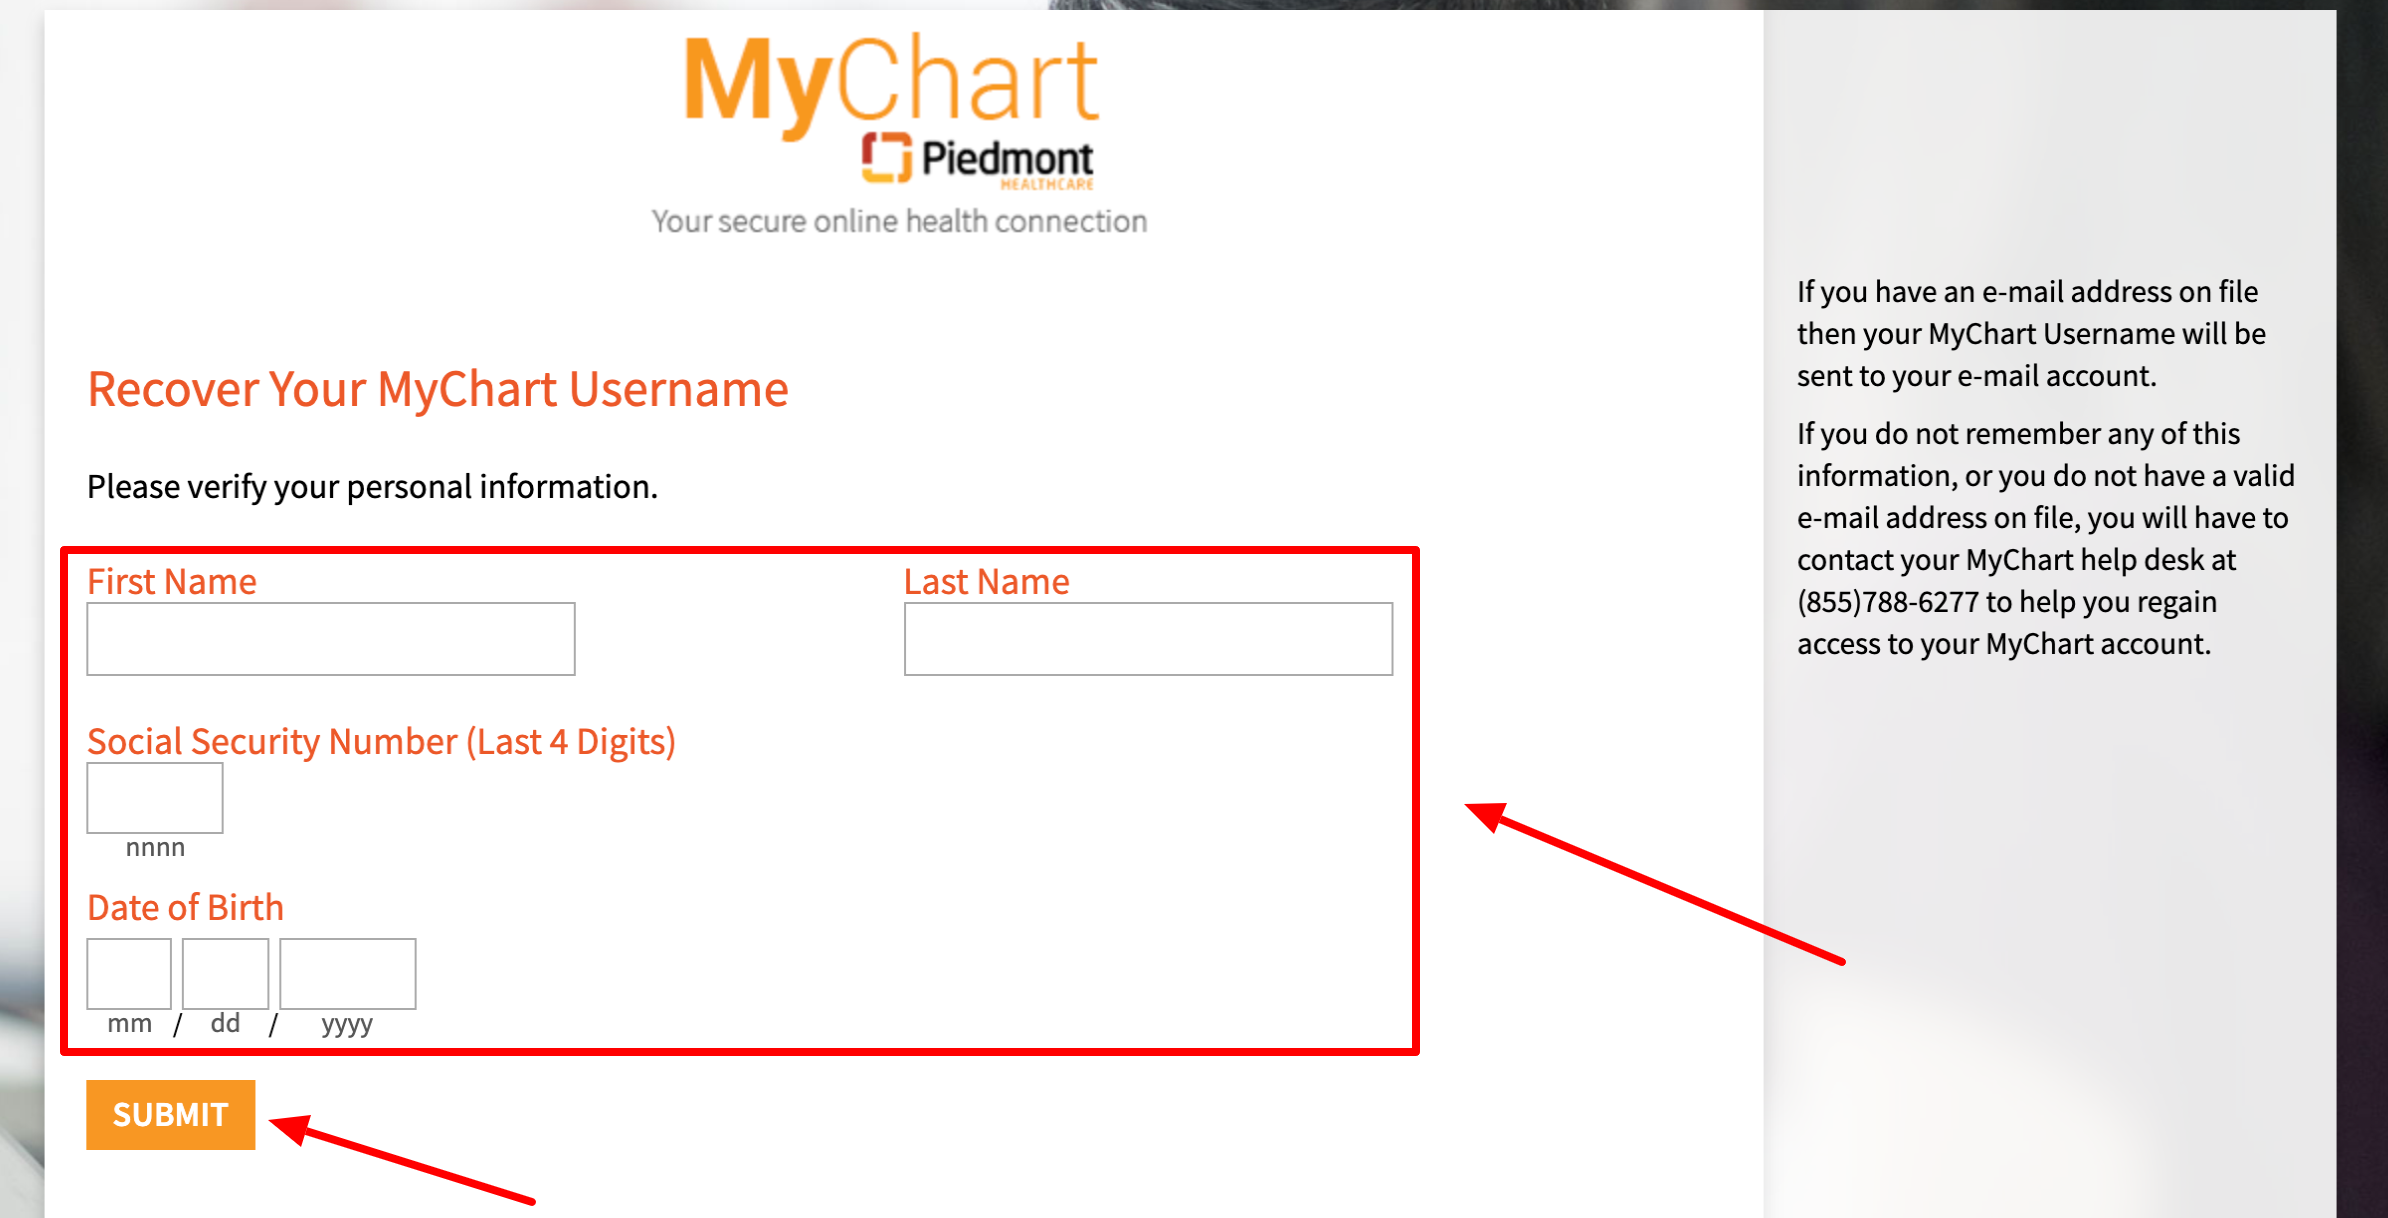 My Chart Piedmont forget username